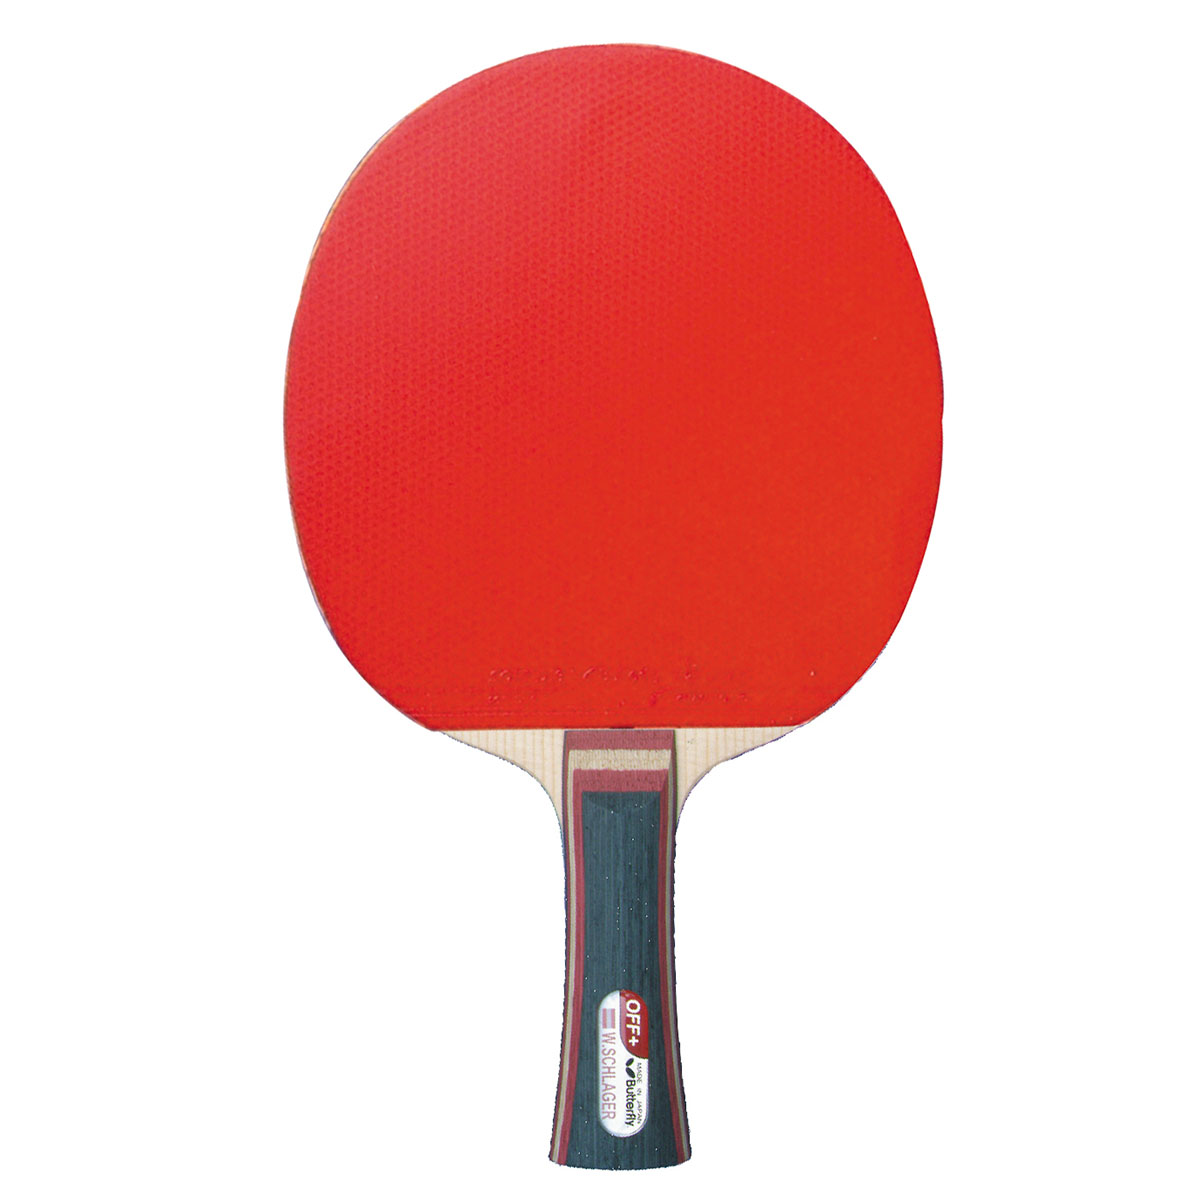 Butterfly Primorac Off Table Tennis Bat With Bryce Speed Fx Rubber Tagdrive